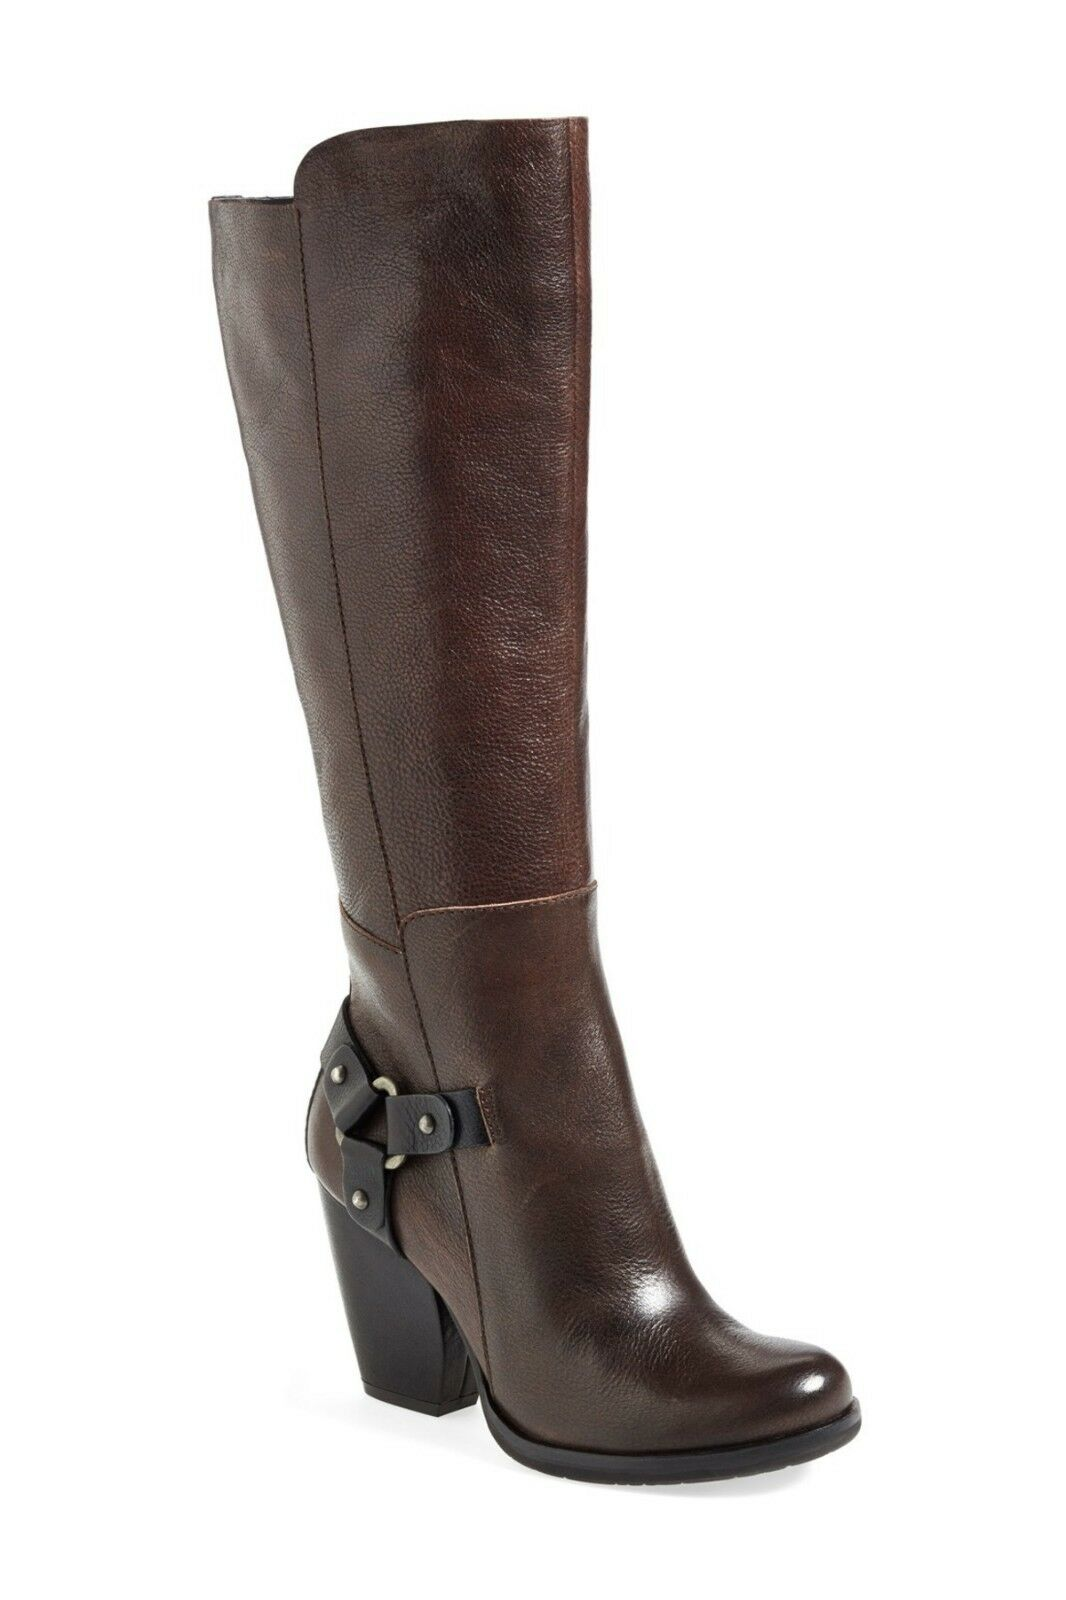 NEW Kork-Ease 'Olson' Harness Tall Boot, Brown Leather, Women Size 6,  299